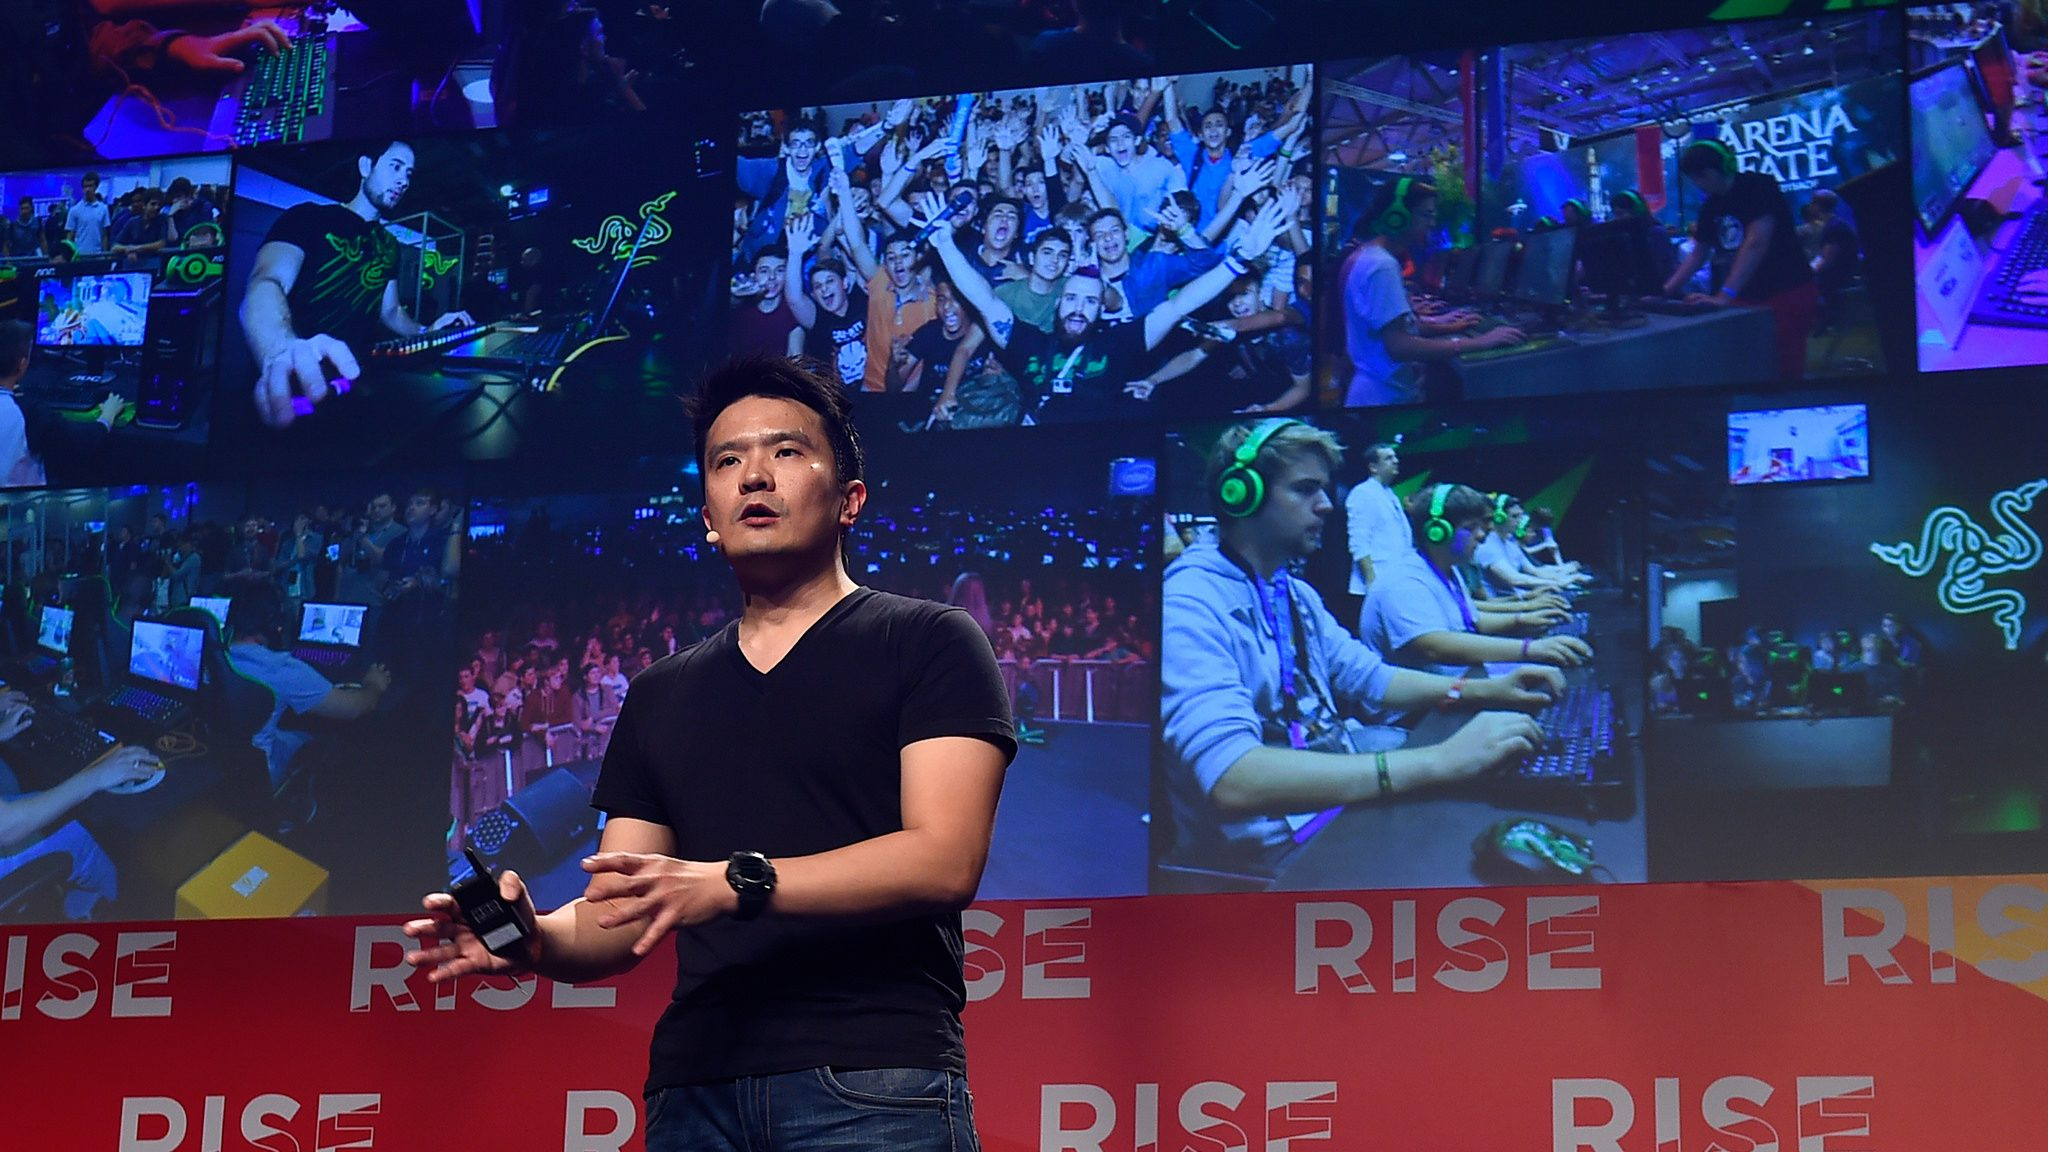 Razer co-founder Min-Liang Tan on stage at the RISE conference in Hong Kong, 2016